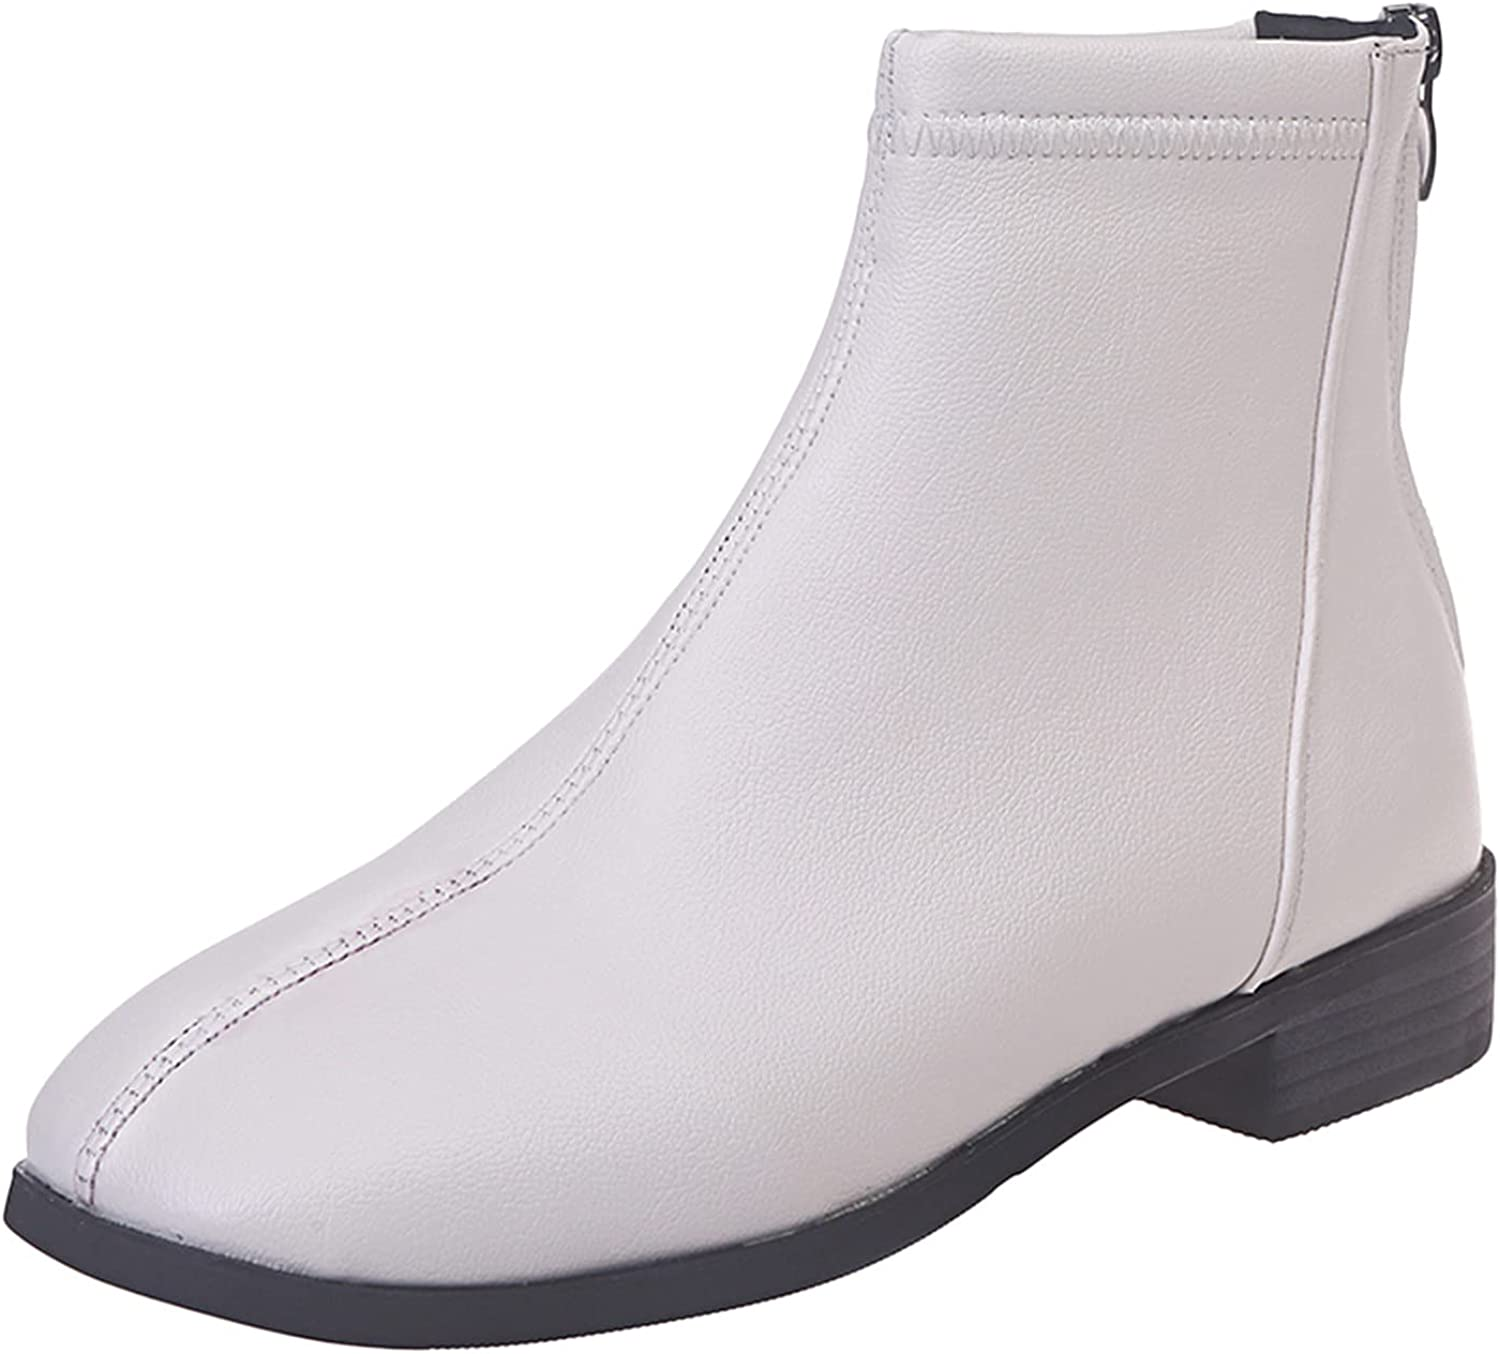 Women's Ankle Booties Fashion British Style Low-heeled Zipp